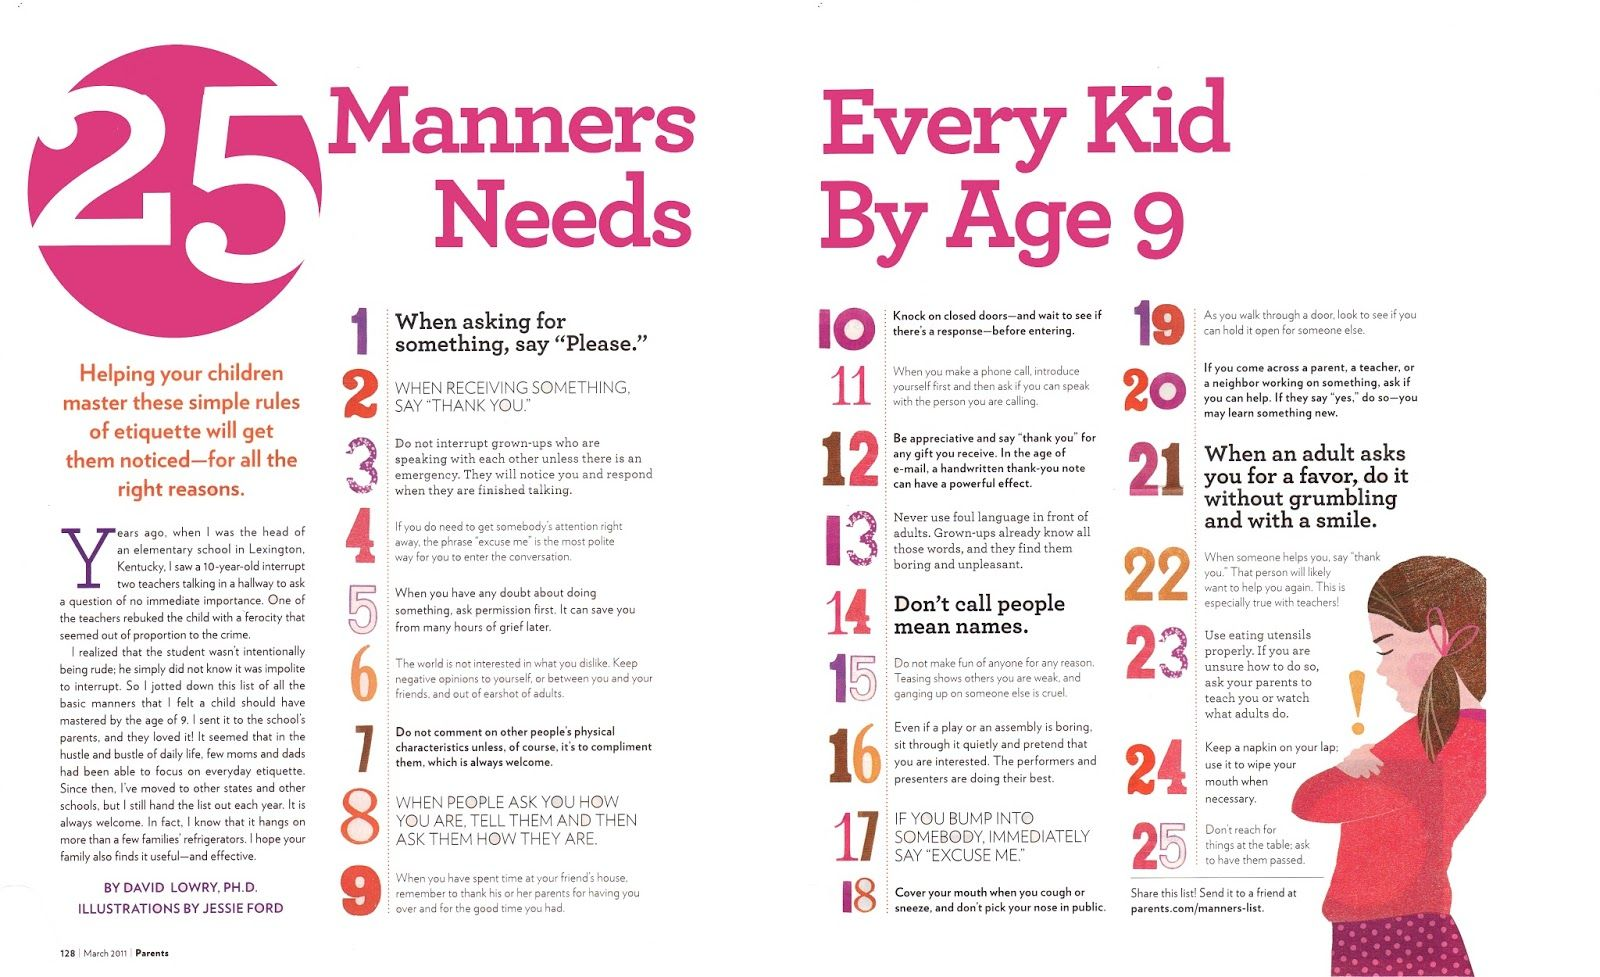 25 Manners Every Kid Should Know By Age Nine